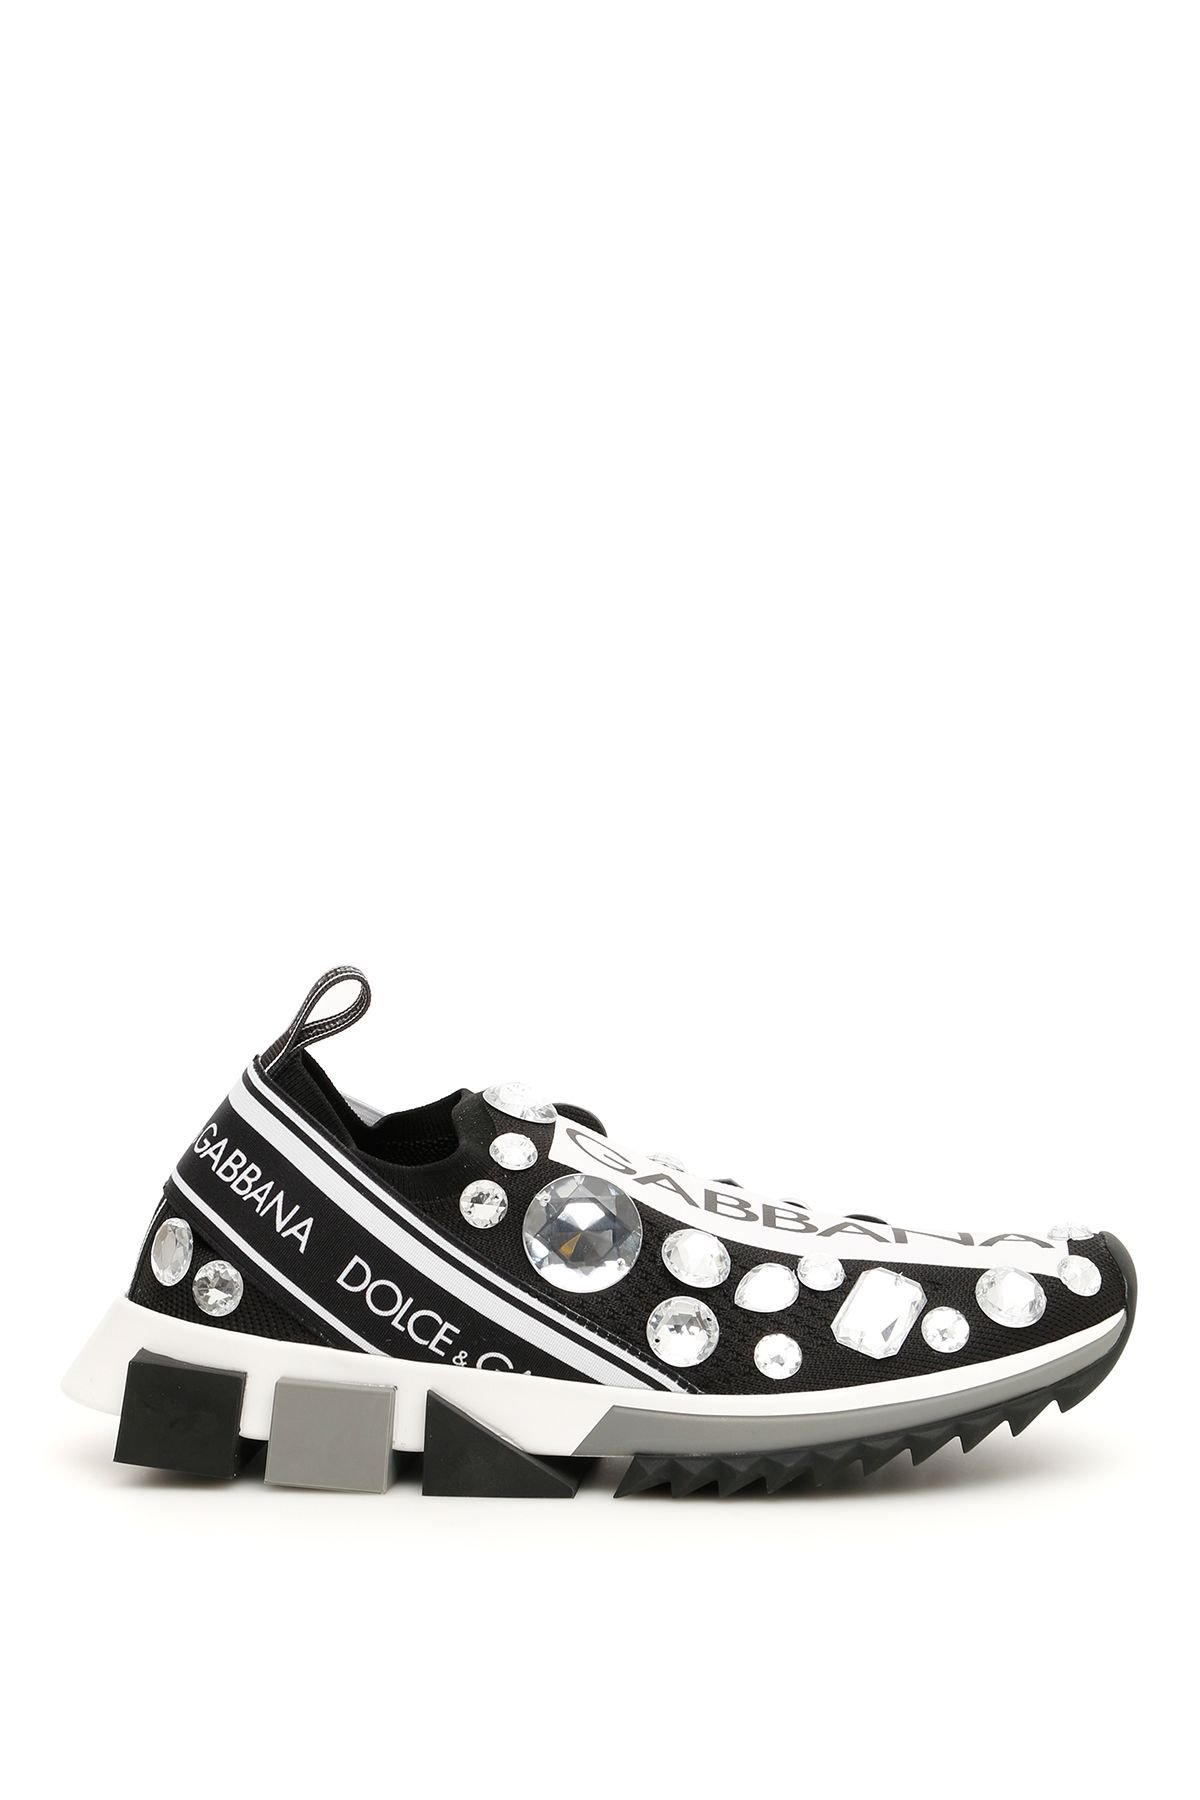 Dolce & Gabbana Crystal Sorrento Sneakers